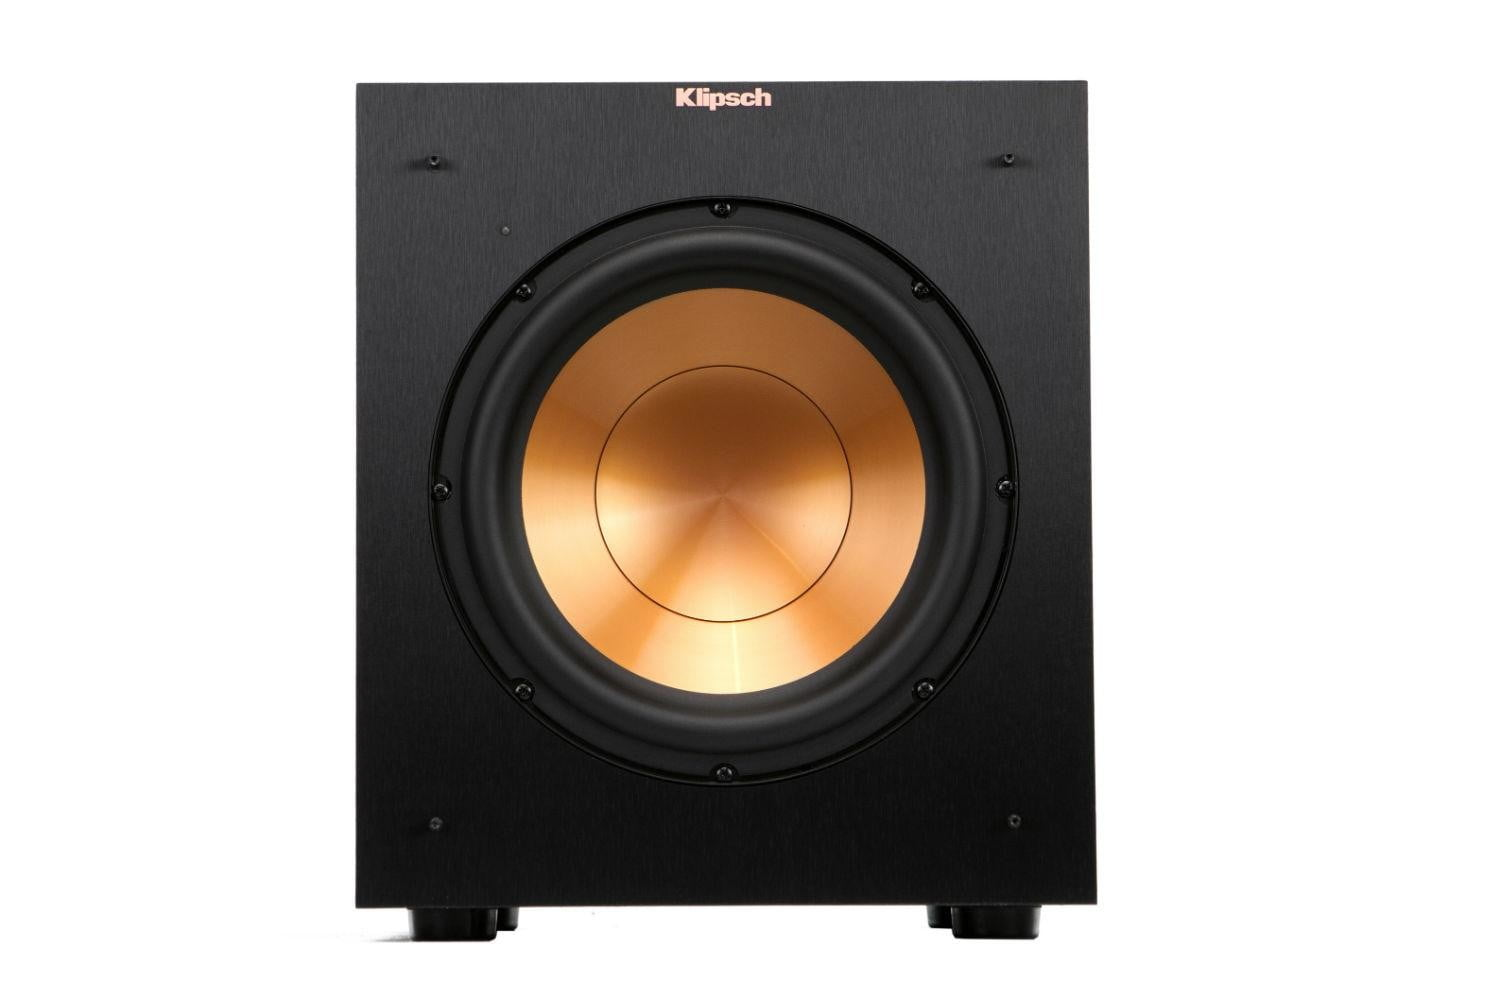 klipsch unveils stockpile new speakers reference home theater line r 10sw front